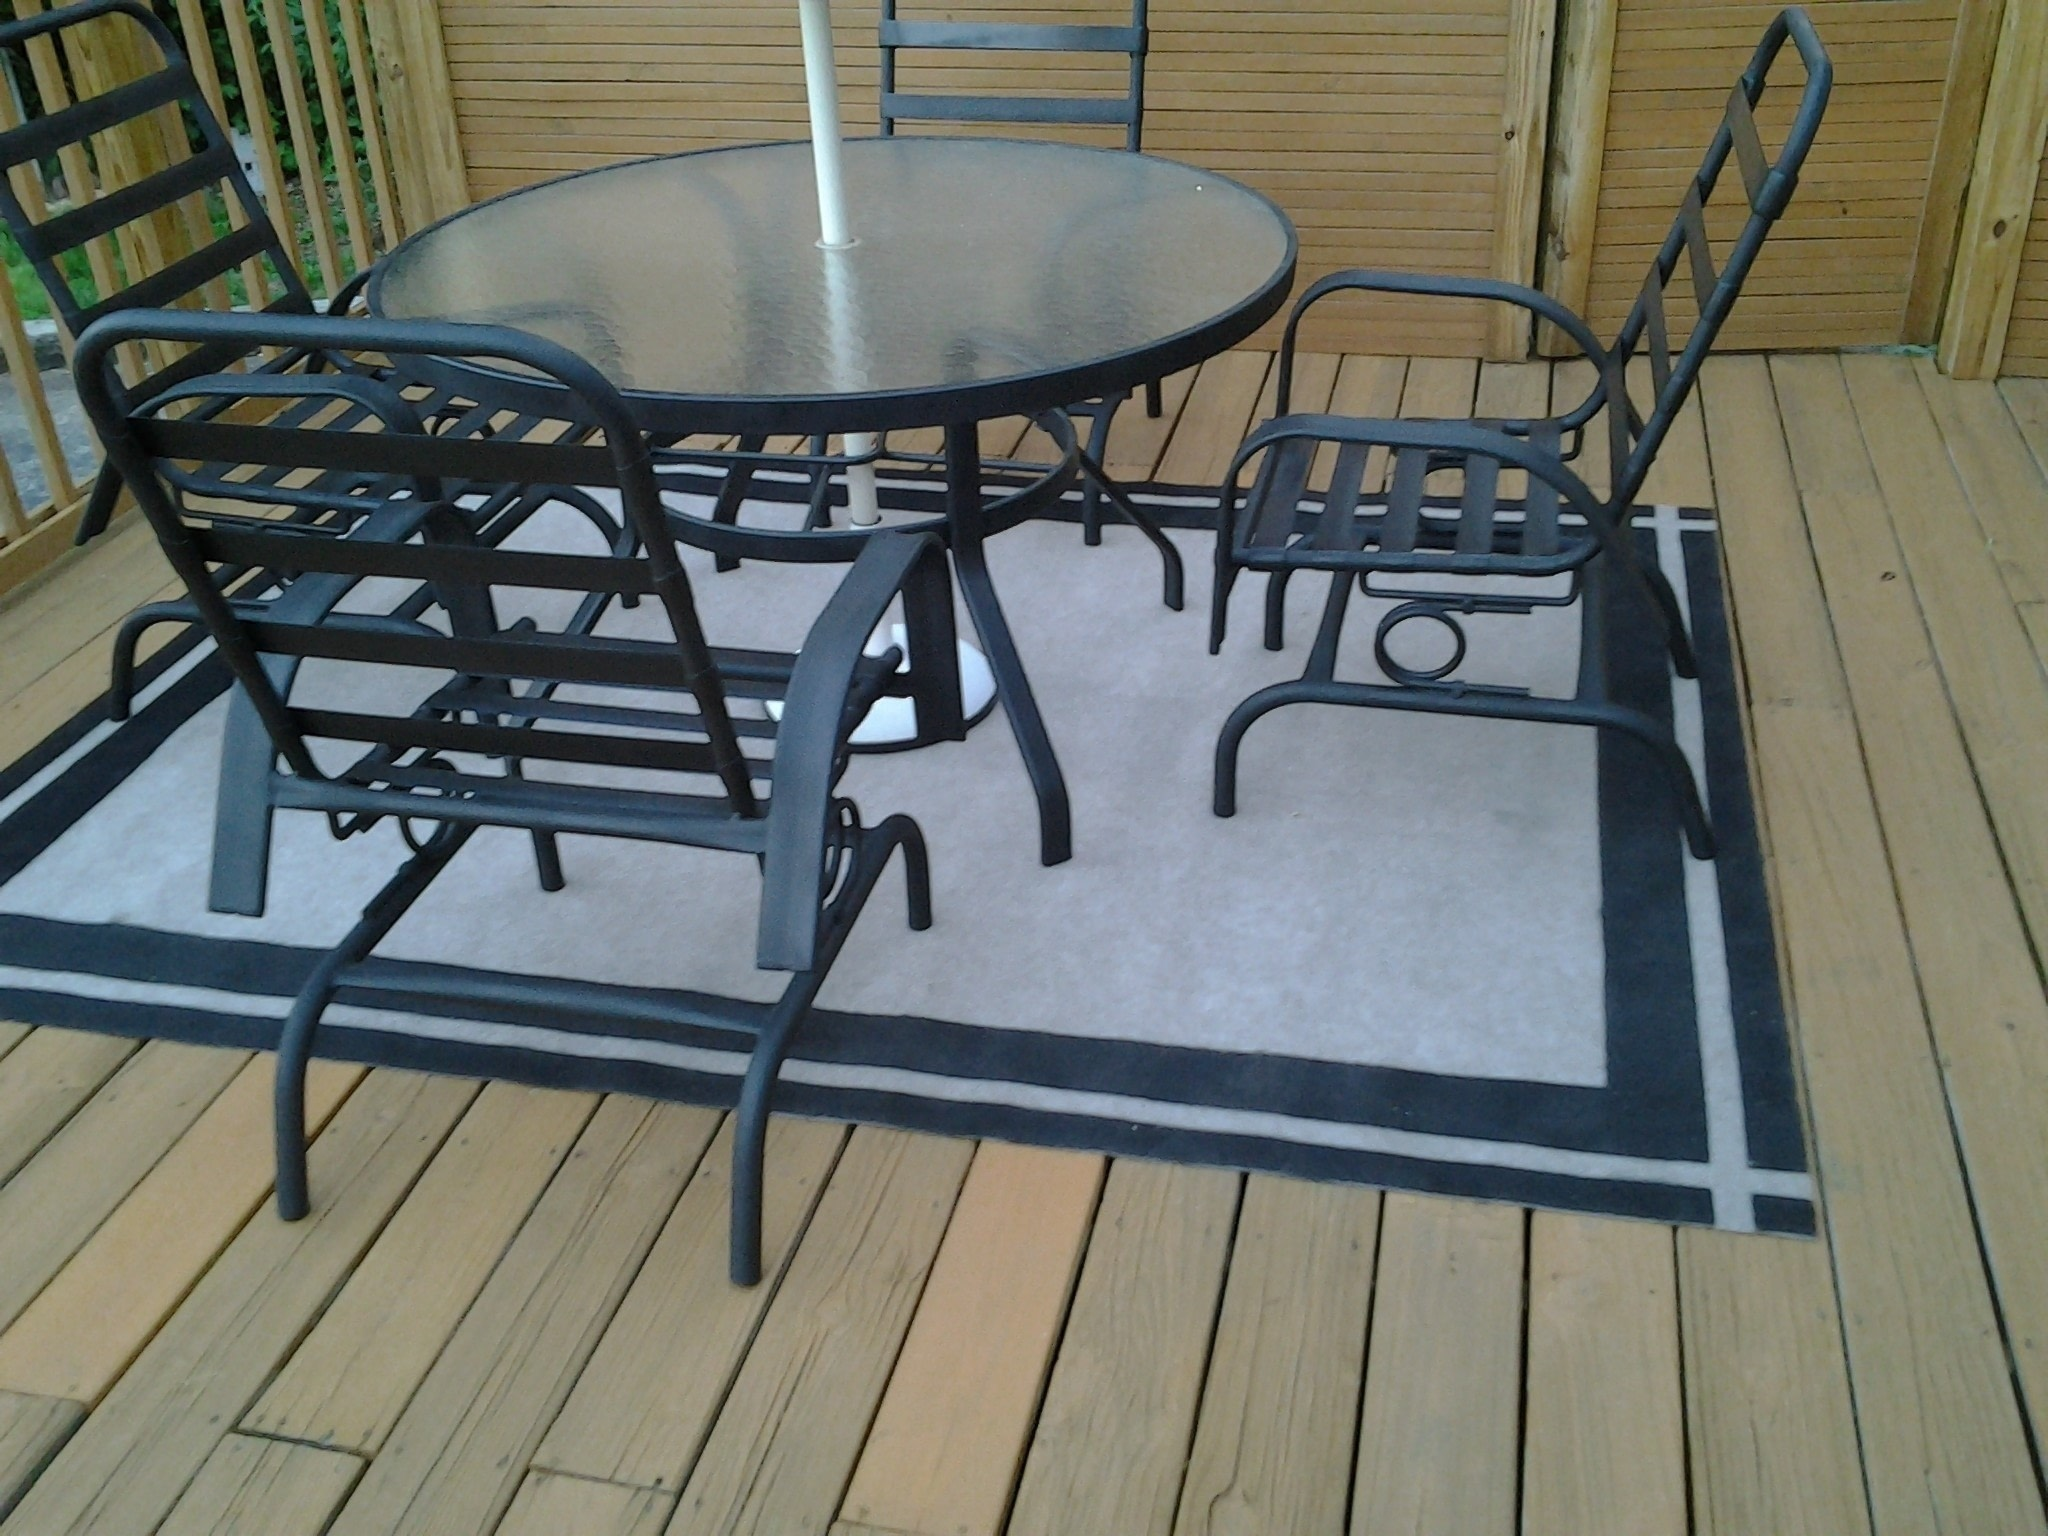 Painted Patio Rug 183 How To Make A Mat Rug 183 Home Diy On